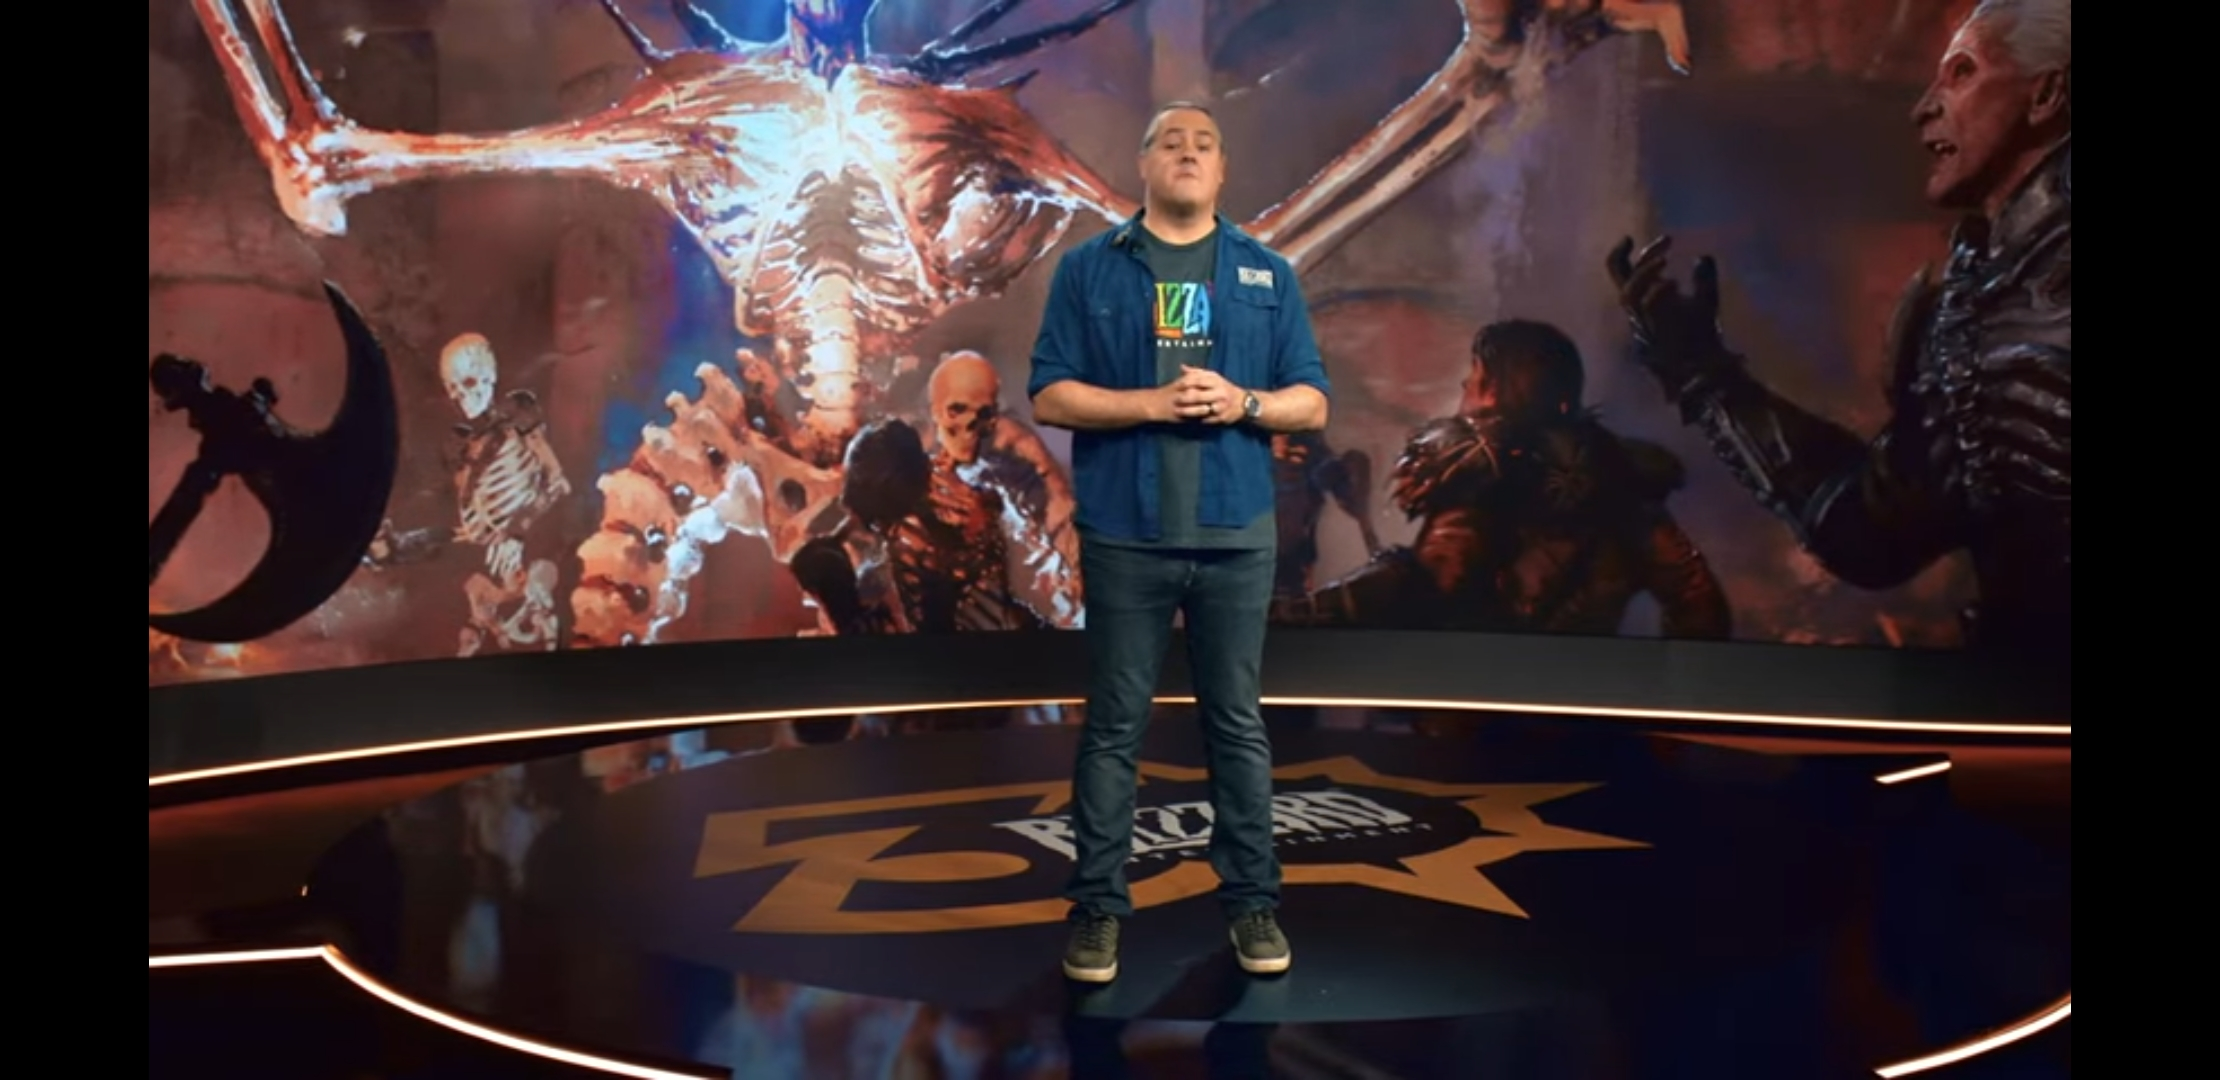 J. Allen Brack, President of Blizzard on stage at Blizzcon's virtual 2021 conference